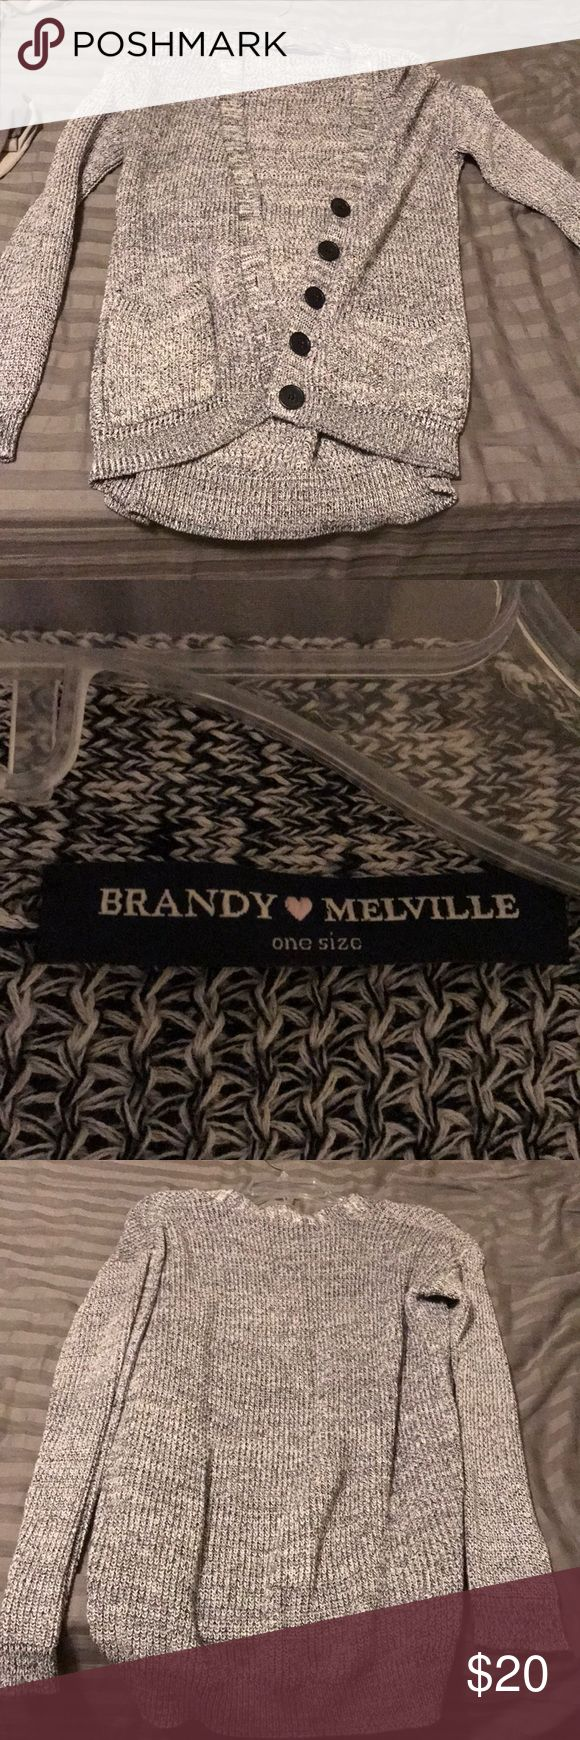 Brandy Melville Cardigan One Size, excellent condition. Has pockets in the front Brandy Melville Sweaters Cardigans